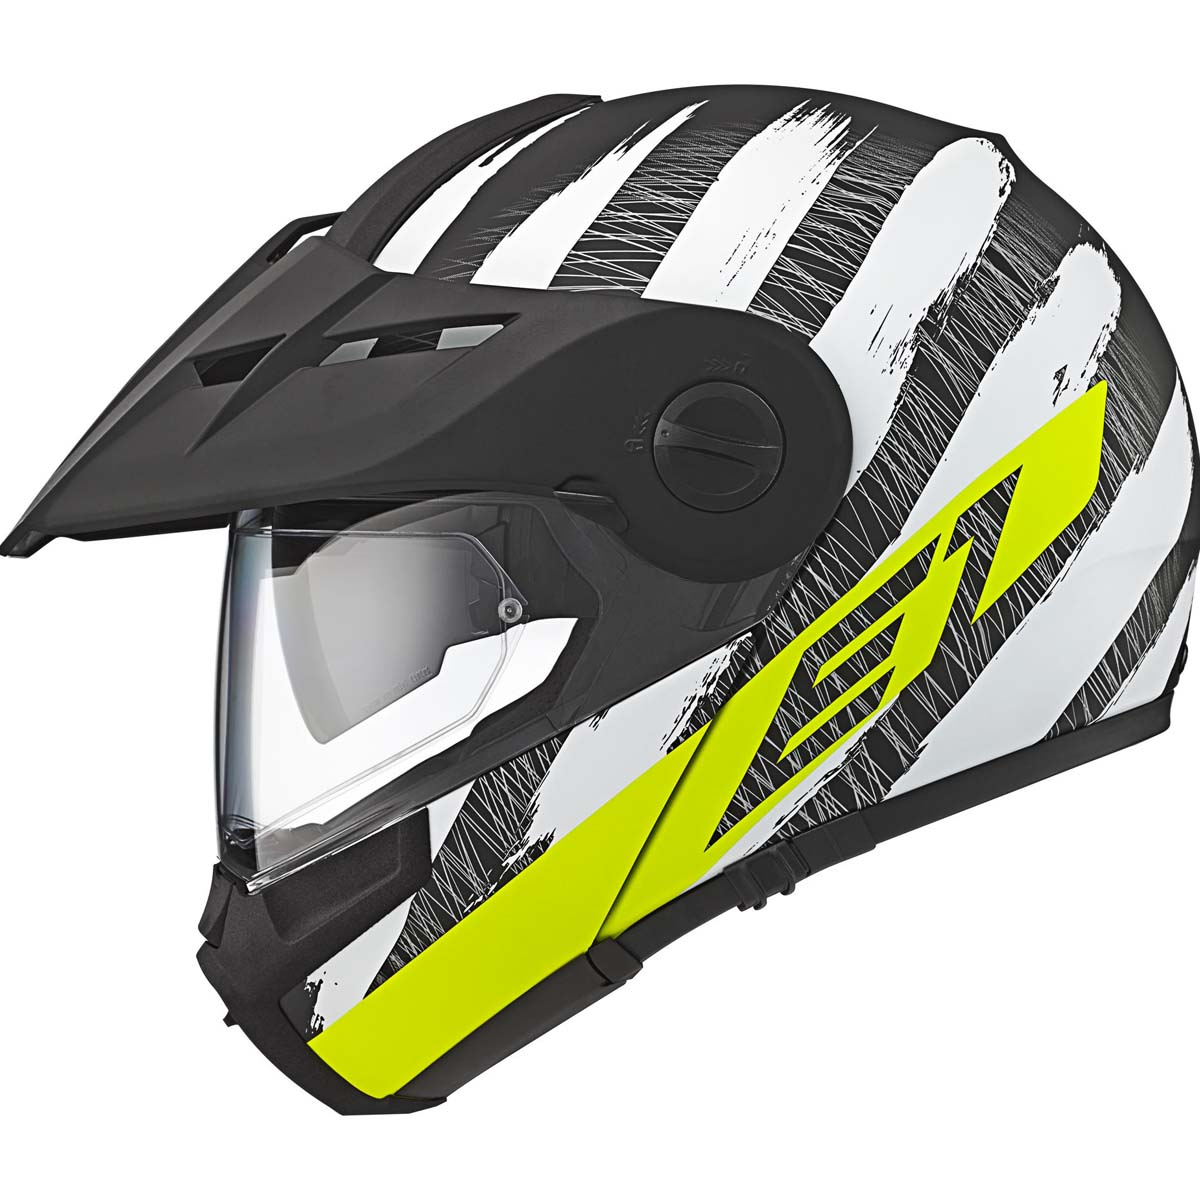 SCHUBERTH Original Visier f/ür Motorradhelm C4 HD yellow 50-59